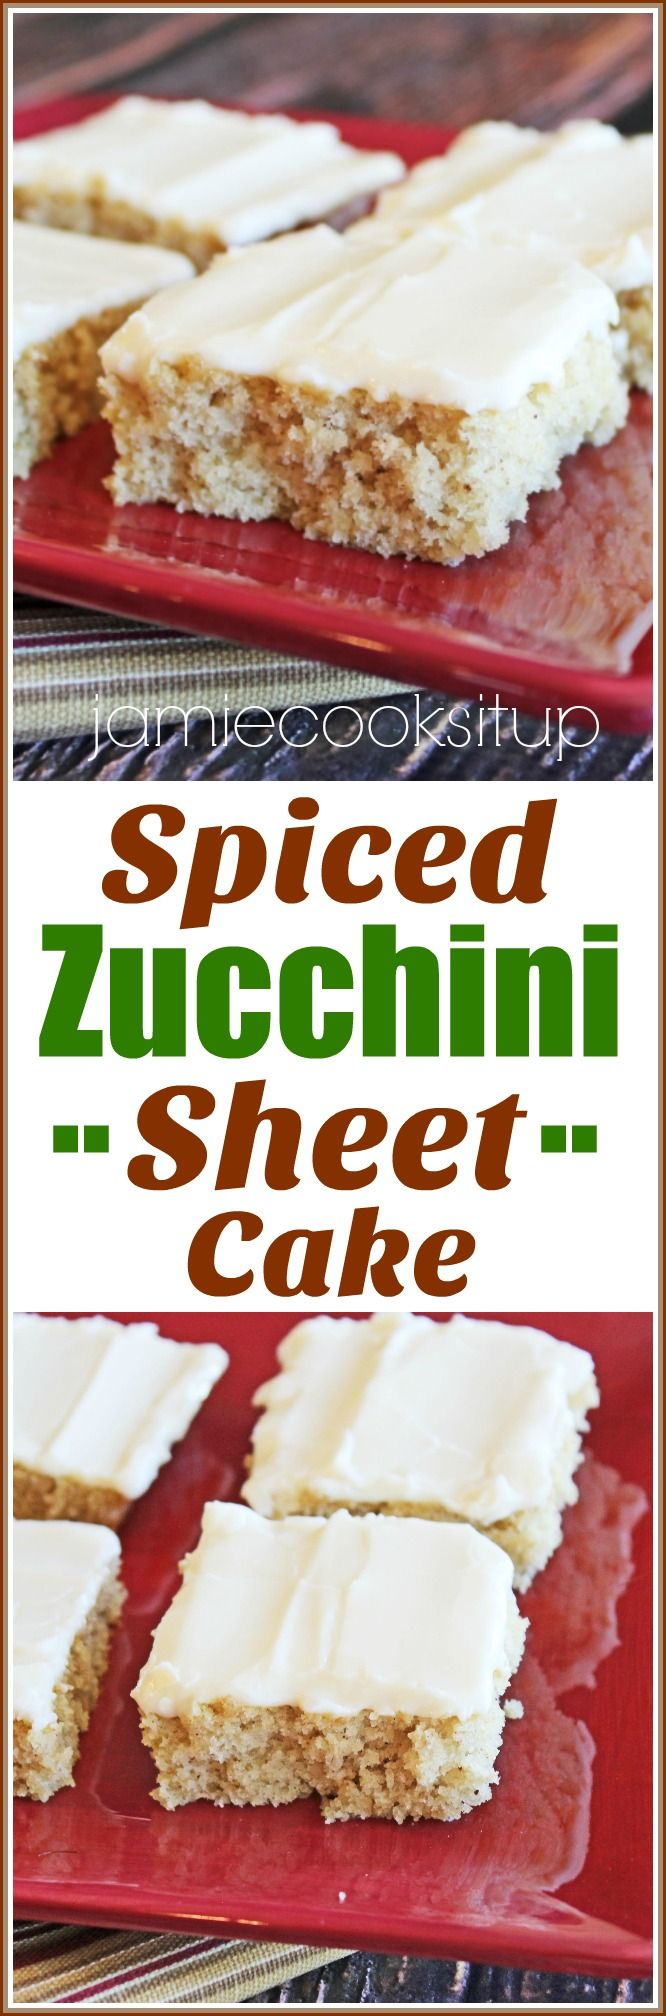 Spiced Zucchini Sheet Cake from Jamie Cooks It Up! A great way to use up that garden zucchini!